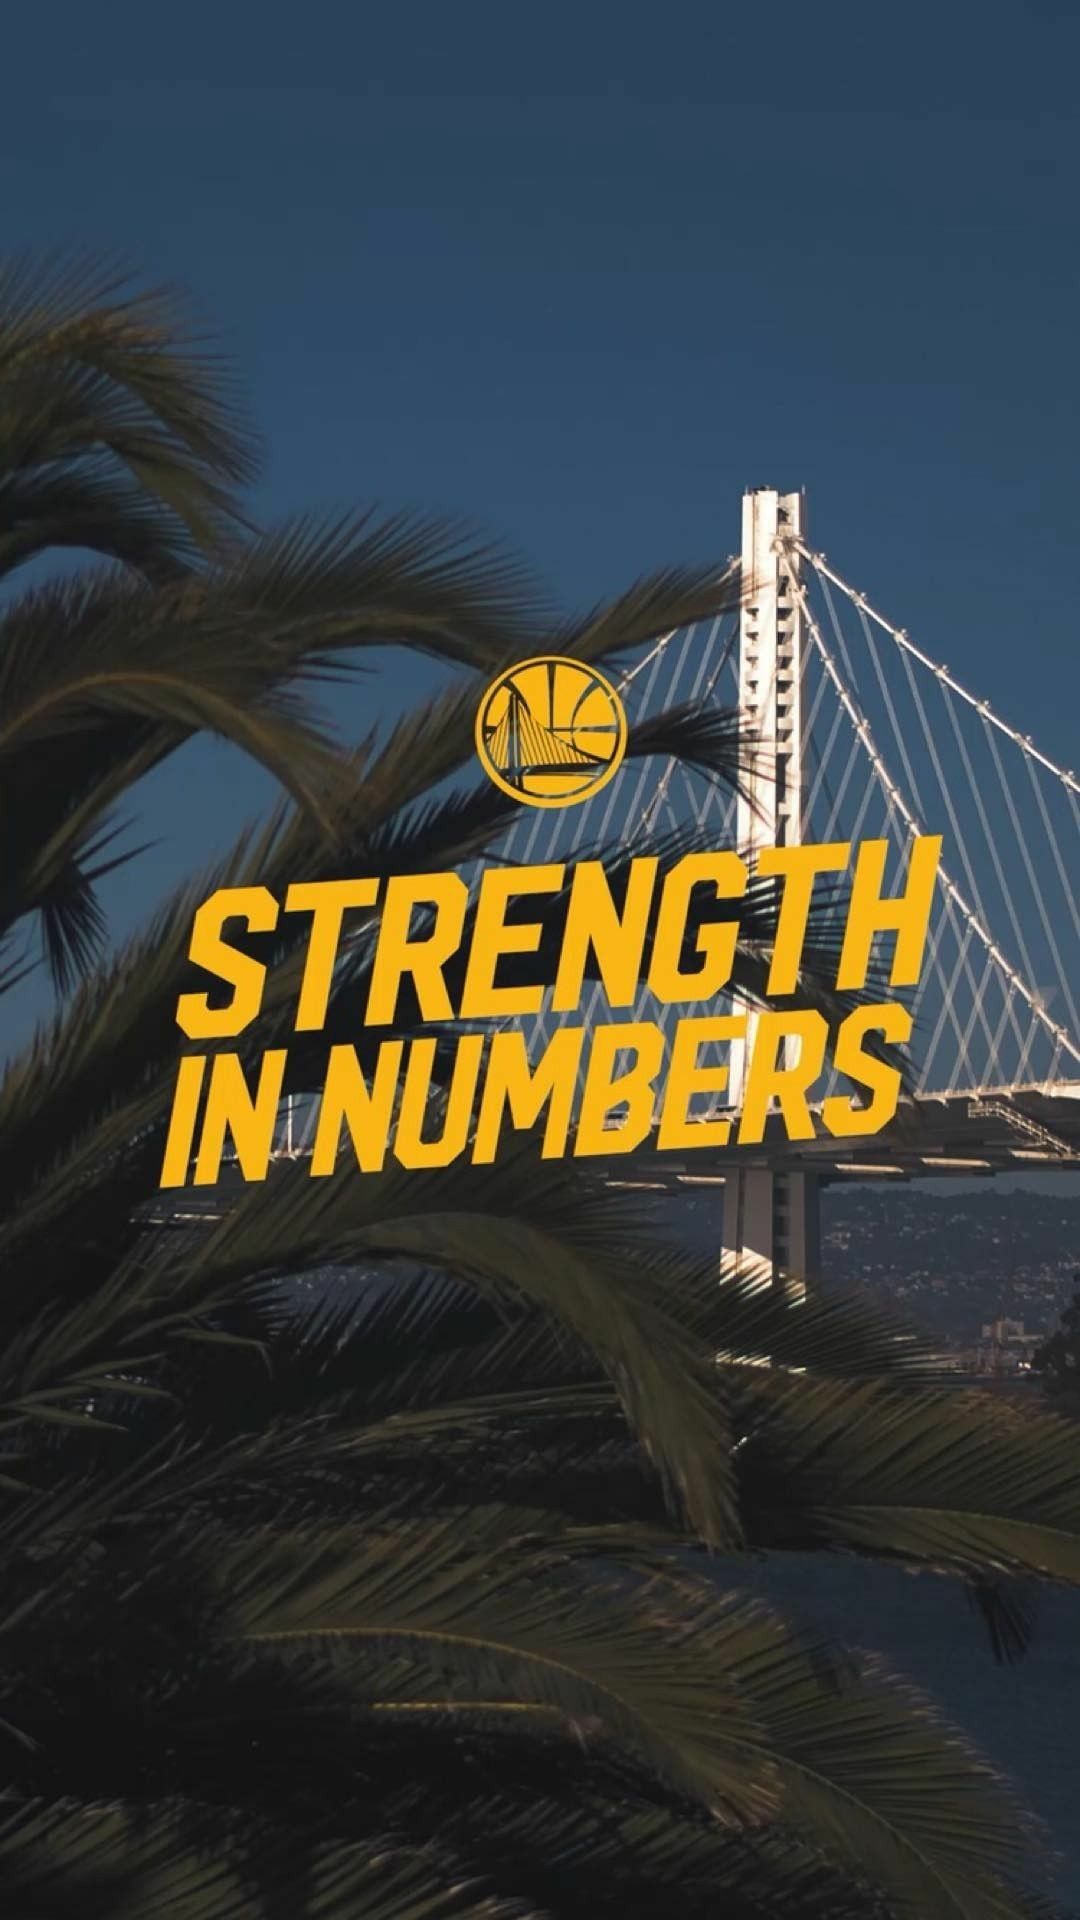 1080x1920 Warriors Wallpaper | THE OFFICIAL SITE OF THE GOLDEN STATE WARRIORS | GSW  Dub Nation !!! | Pinterest | Golden state warriors, Golden state warriors  ...